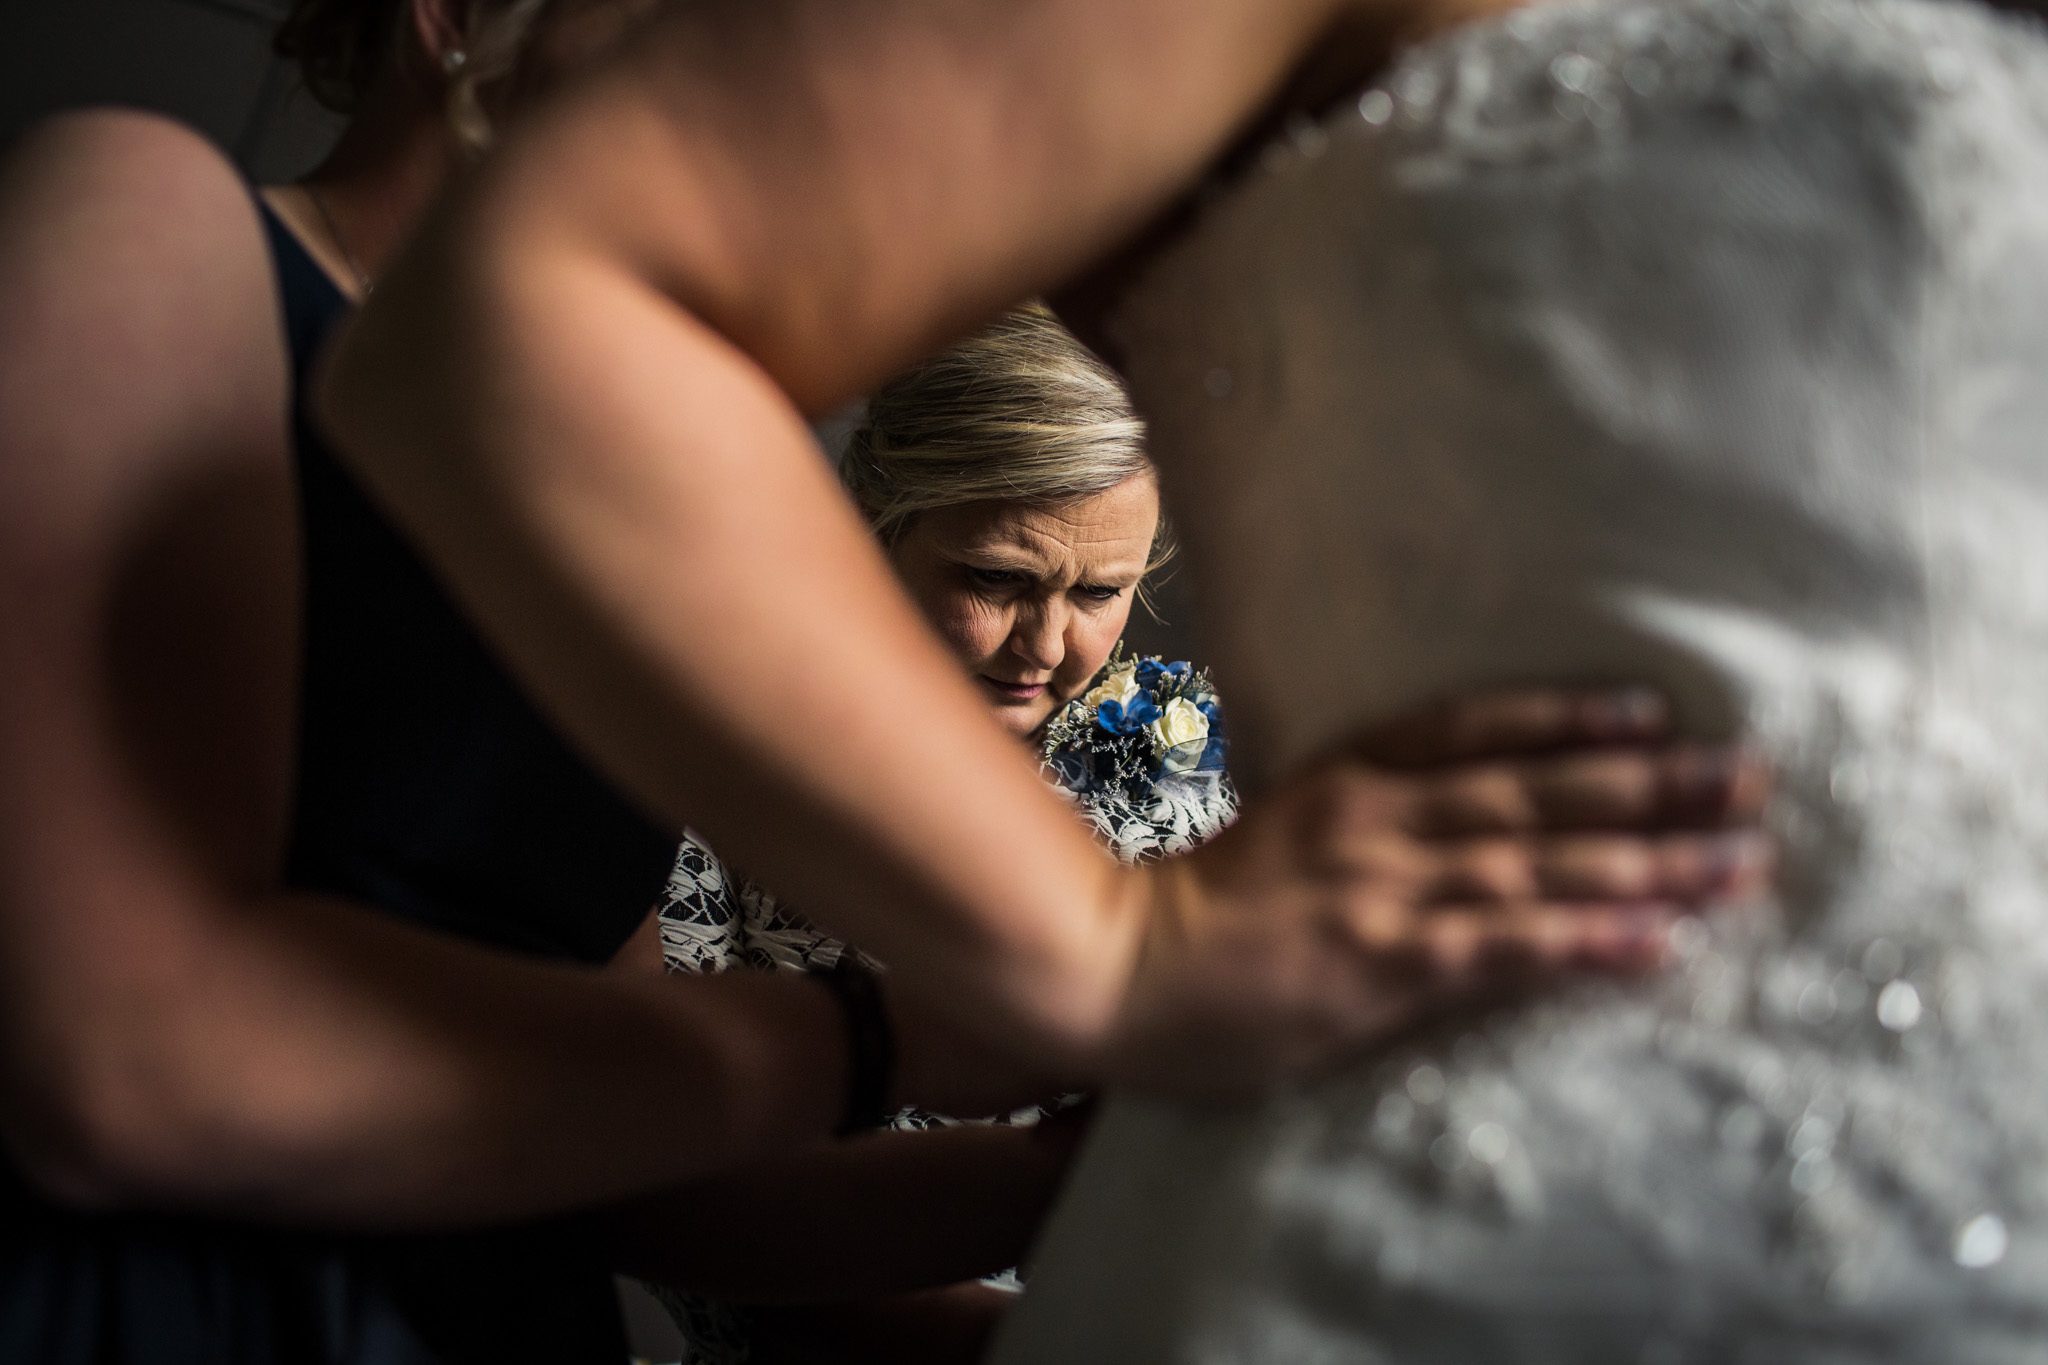 Zibell Spring Wedding, Bride and Groom, Powerful, Connected, Exploration, Laura Duggleby Photography -56.JPG